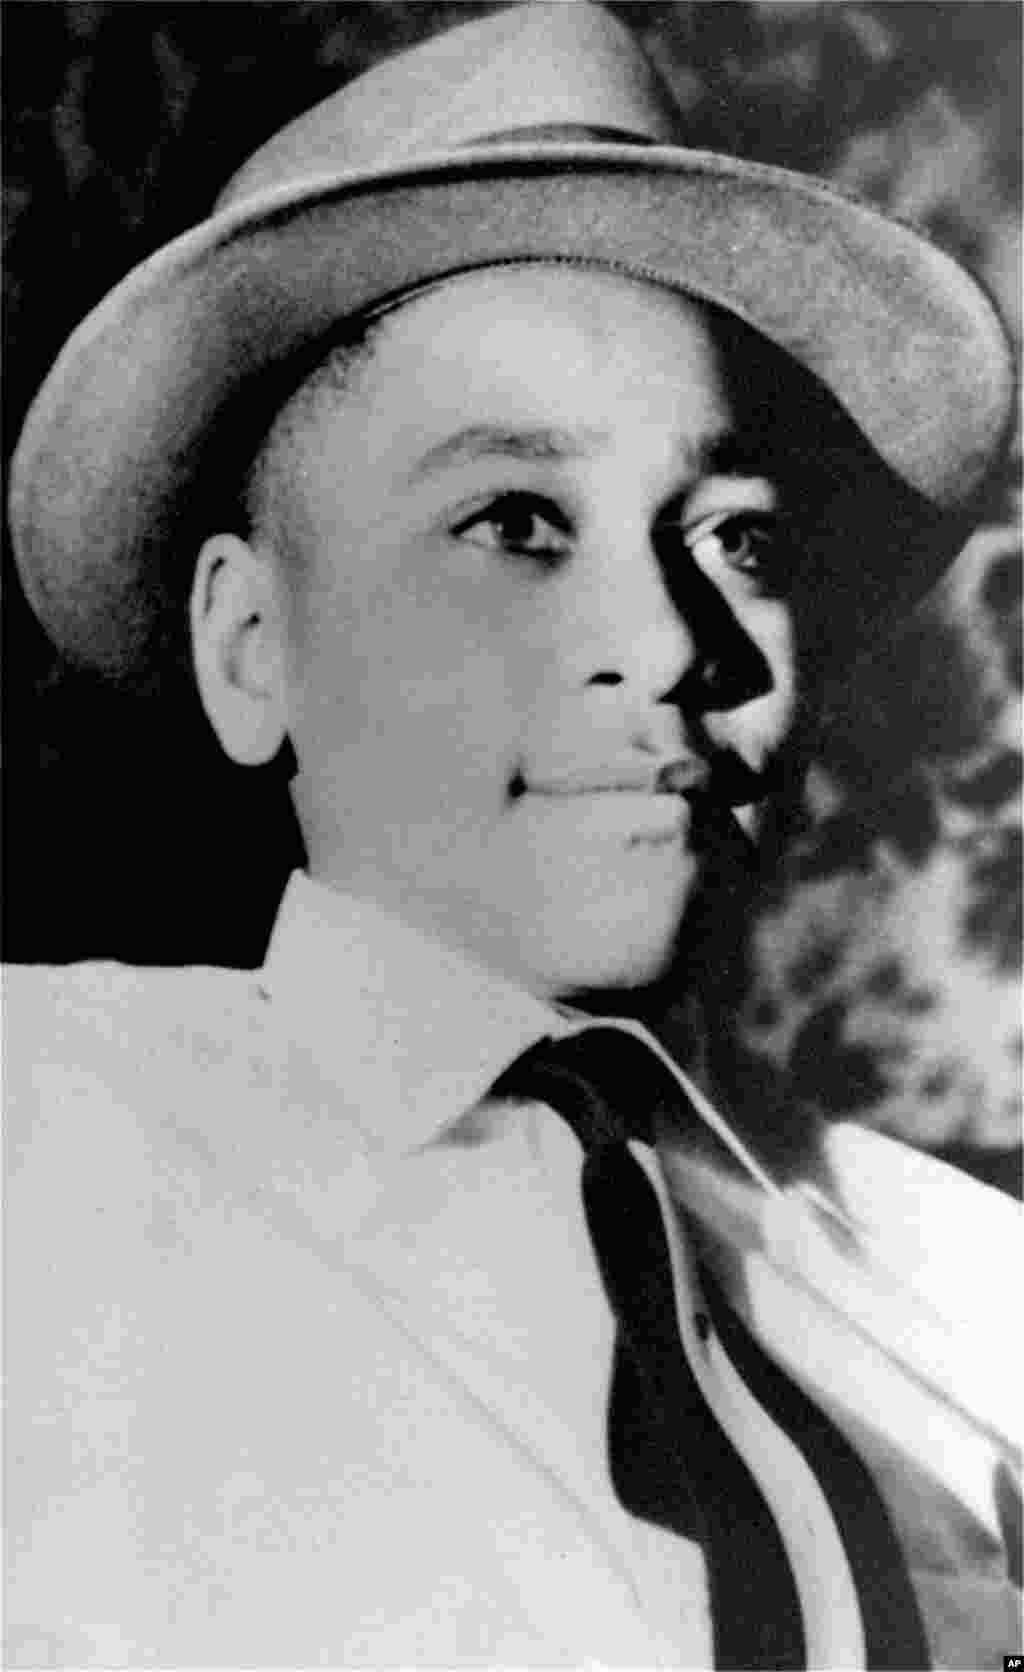 Emmett Till, a 14-year-old from Chicago, was visiting family in Mississippi when he was kidnapped, brutally beaten, shot, and dumped in a river. His two white attackers, who said that they had killed Till because he whistled at a white woman, were acquitted by an all-white jury. The case became a cause célèbre of the civil rights movement.